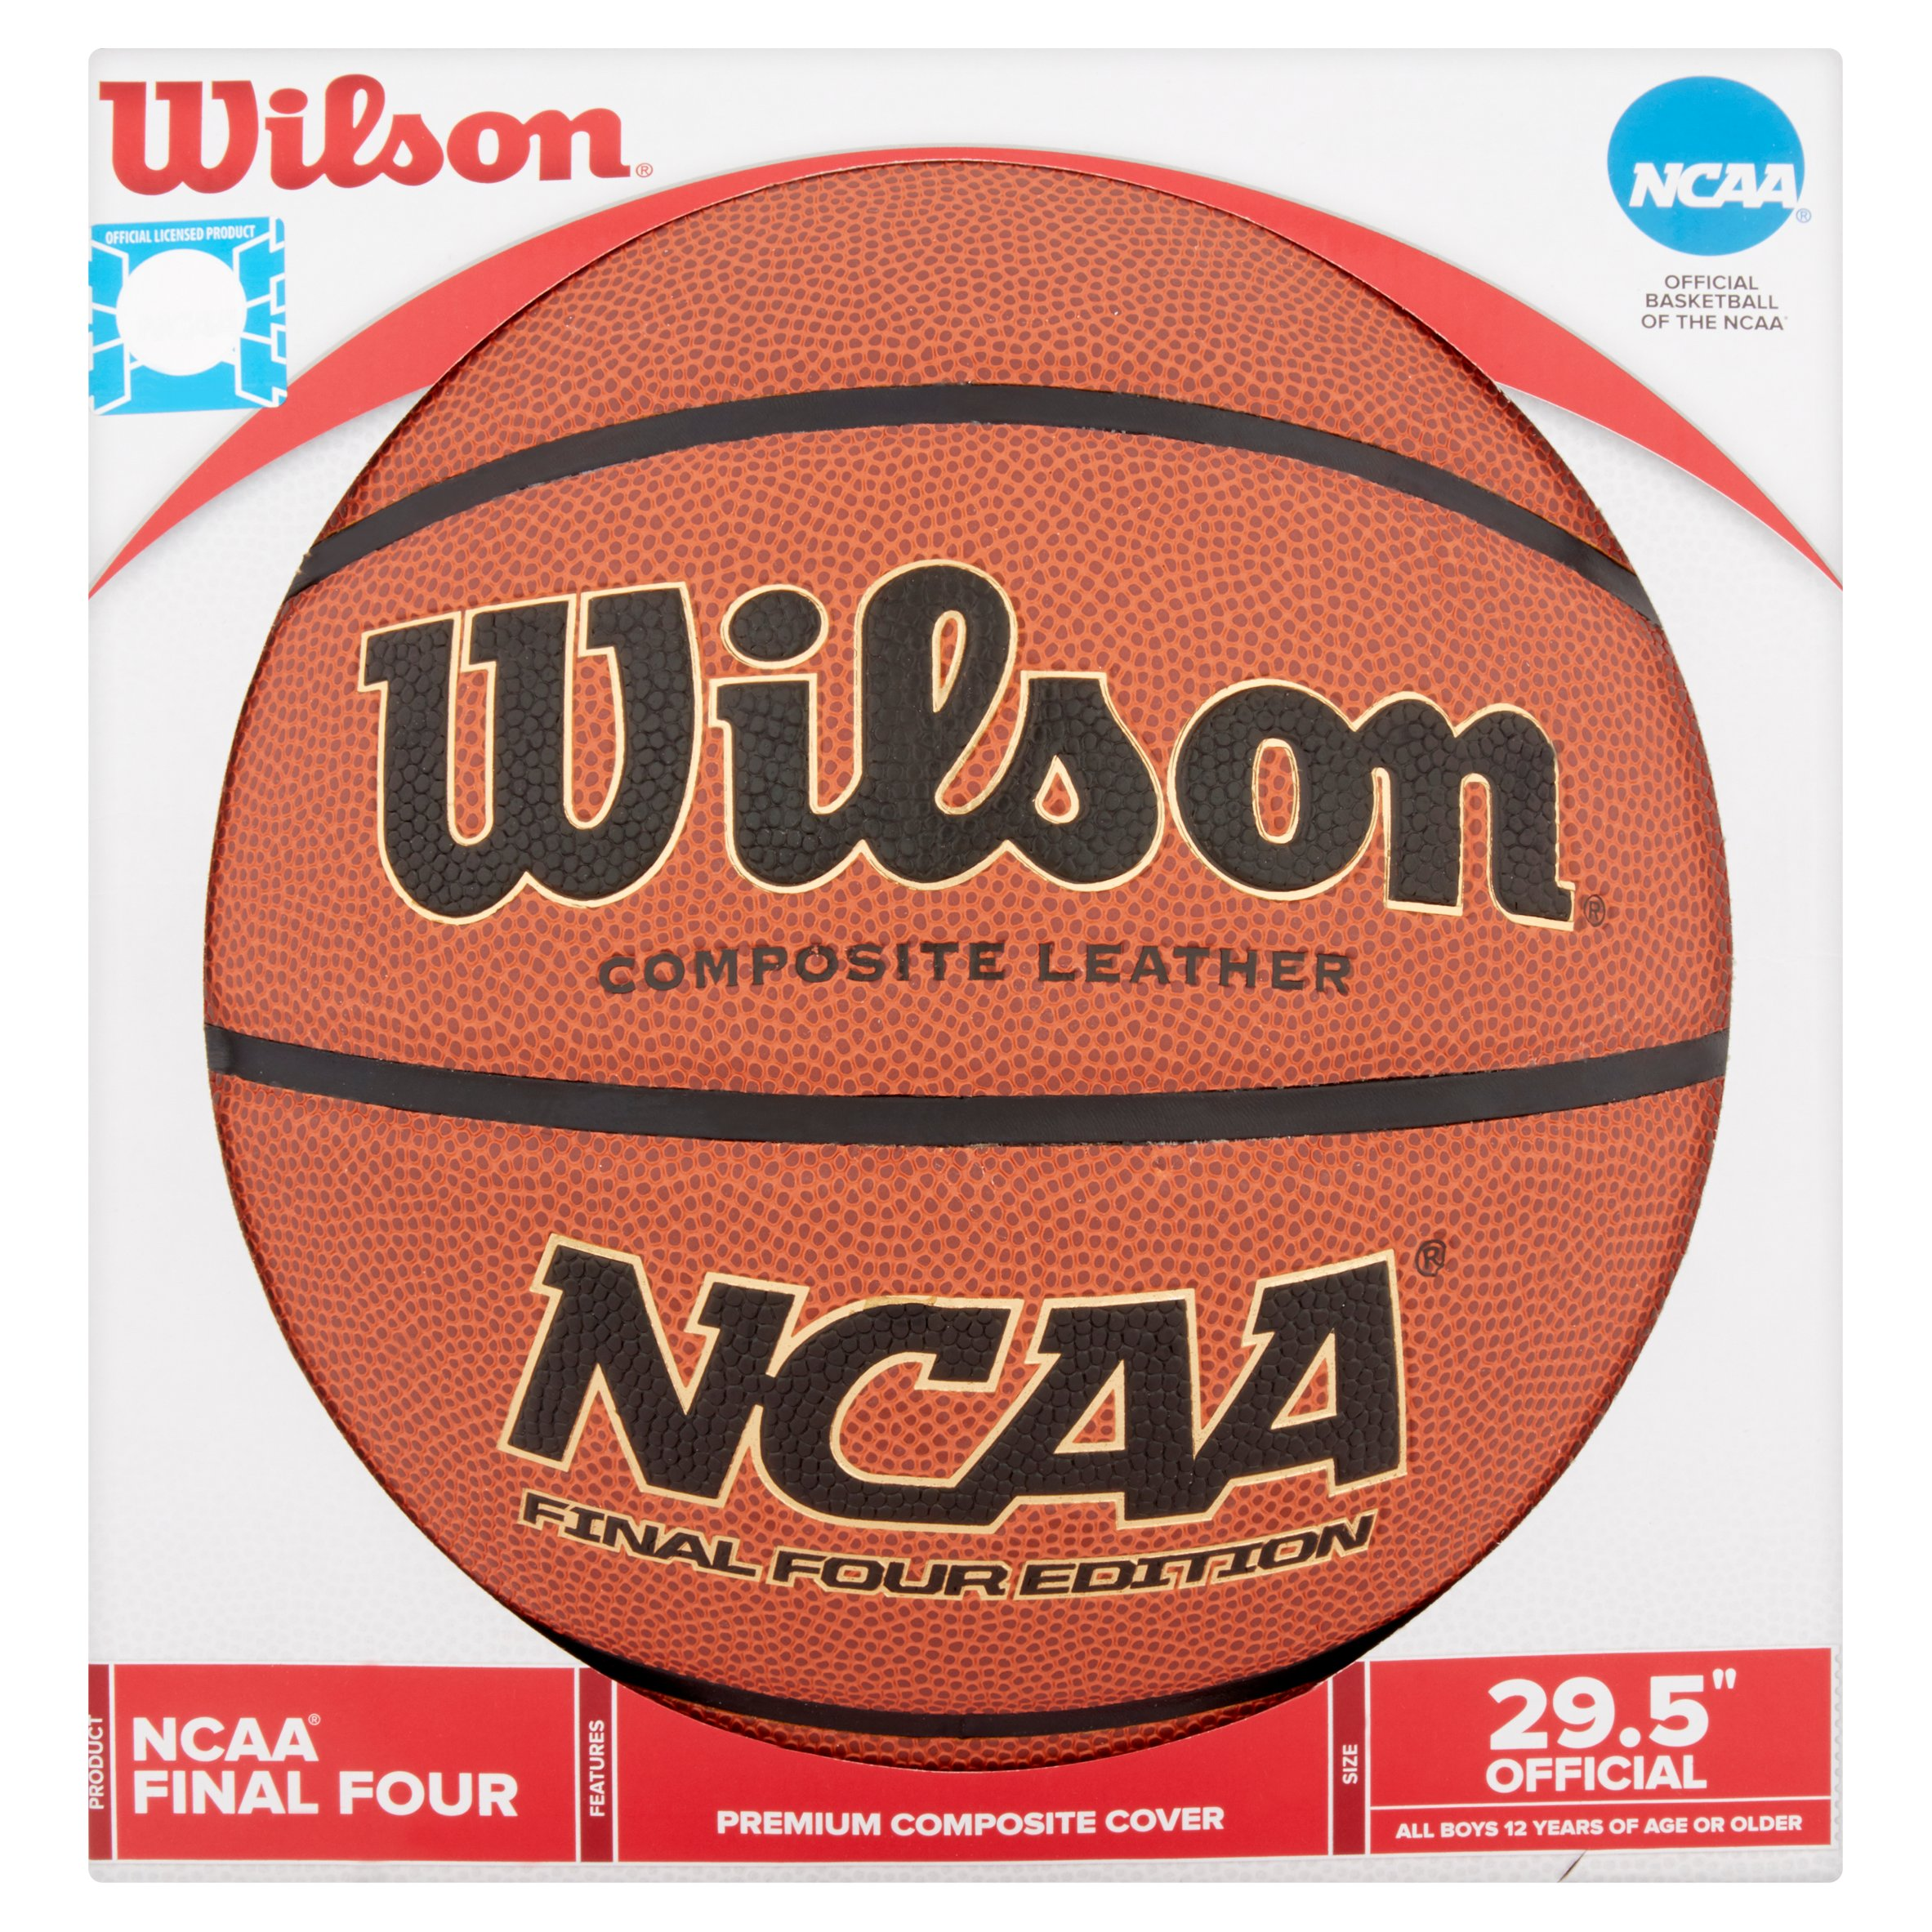 "Wilson NCAA Final 4 Edition Basketball 29.5"" by Wilson Sporting Goods Co."